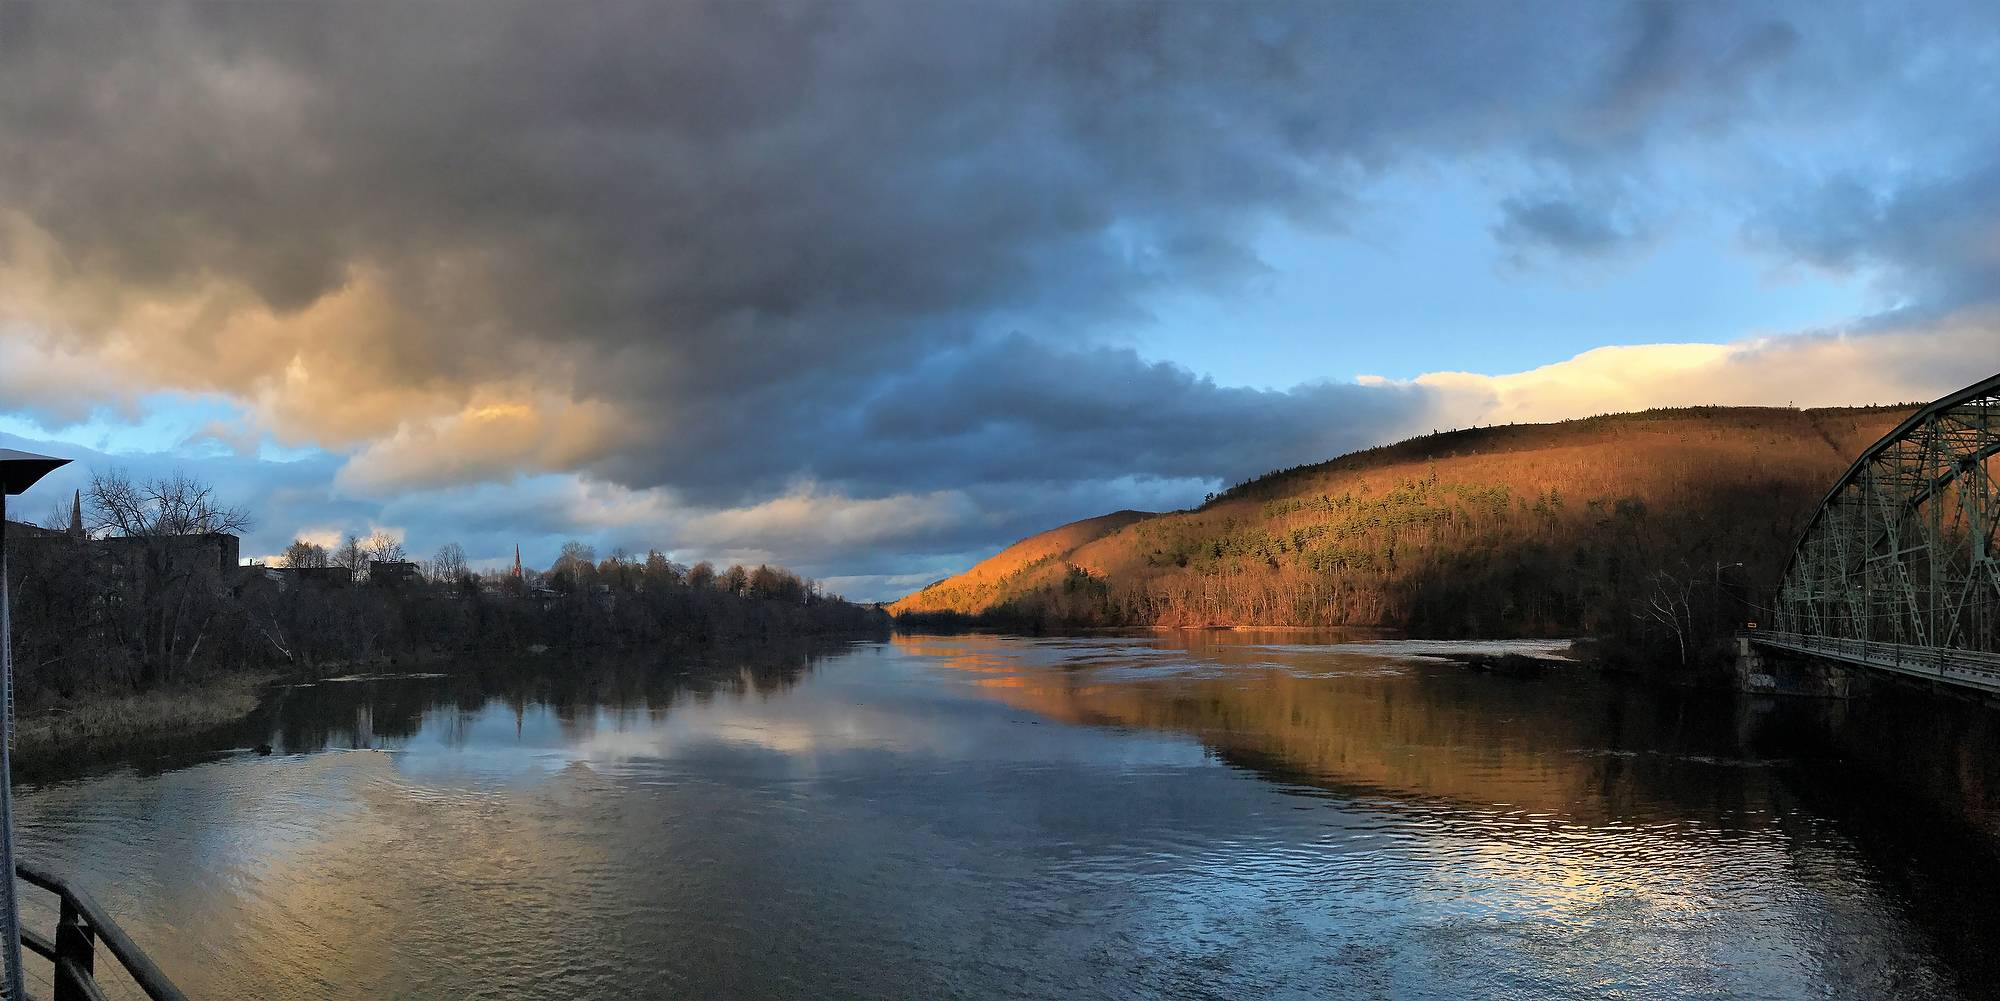 The photo of the Connecticut river separating New Hampshire (on the right) and Vermont (on the left) was taken with an iPhone 7. The most fascinating part of this photo is how the peace and serenity of the sun and calm part of the river meet the turmoil of the clouds and rushing waters of the same sky and river.